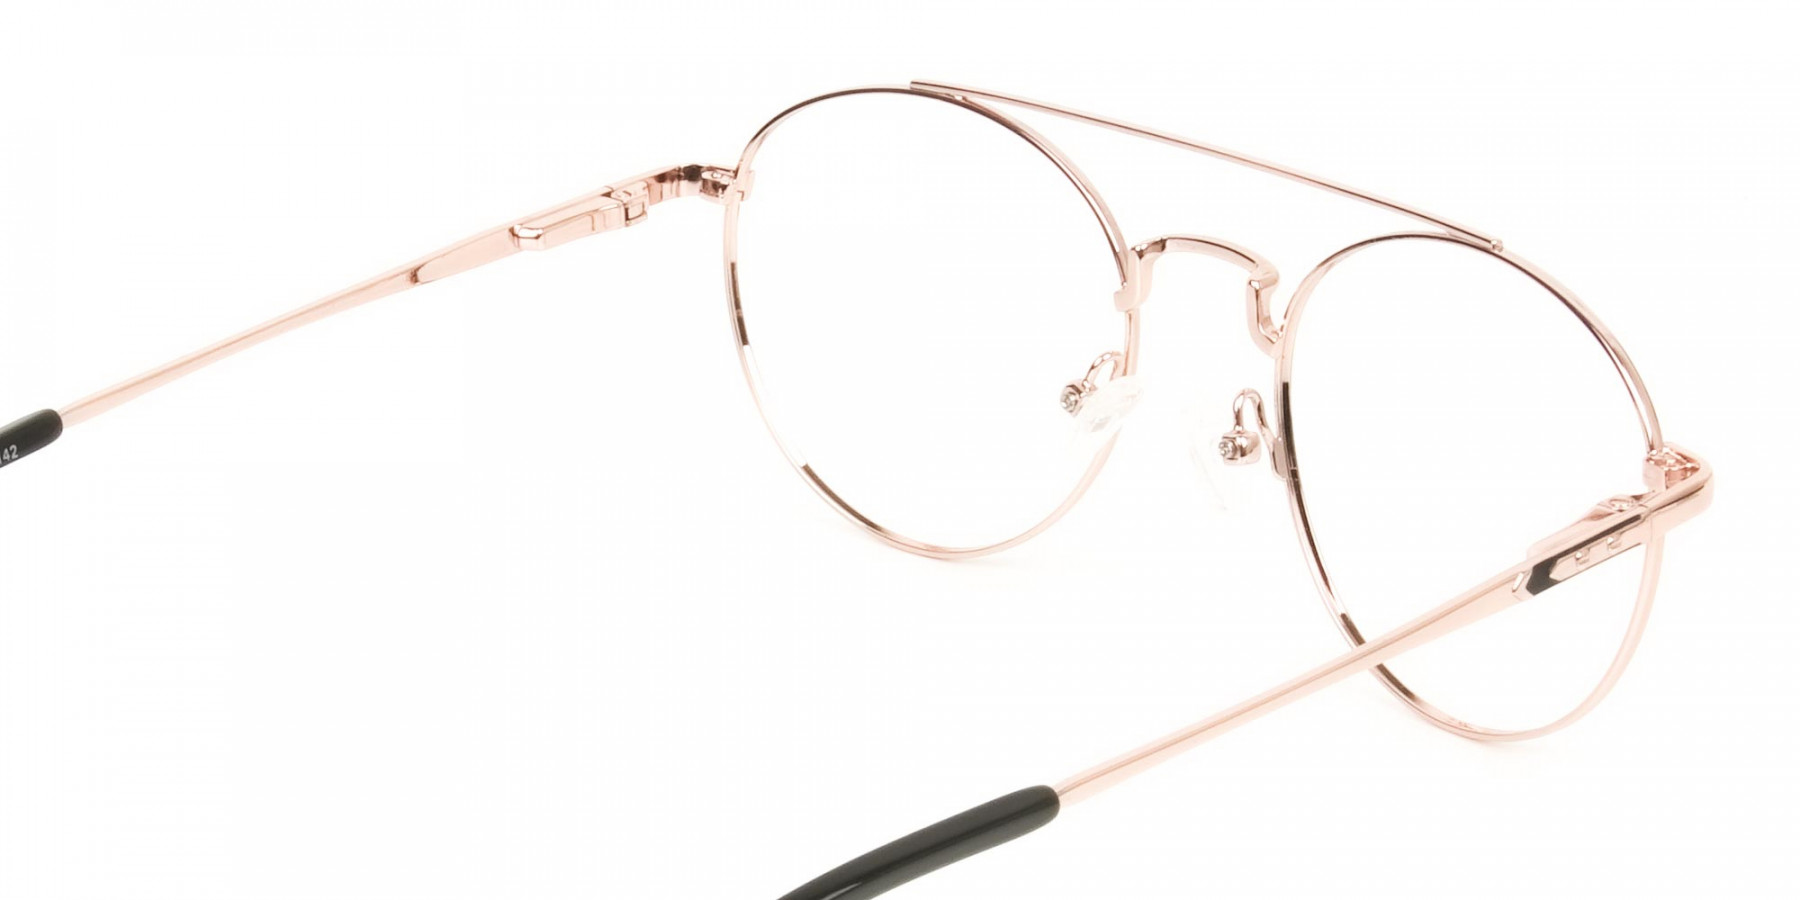 Black & Rose Gold Round Aviator Glasses - 1